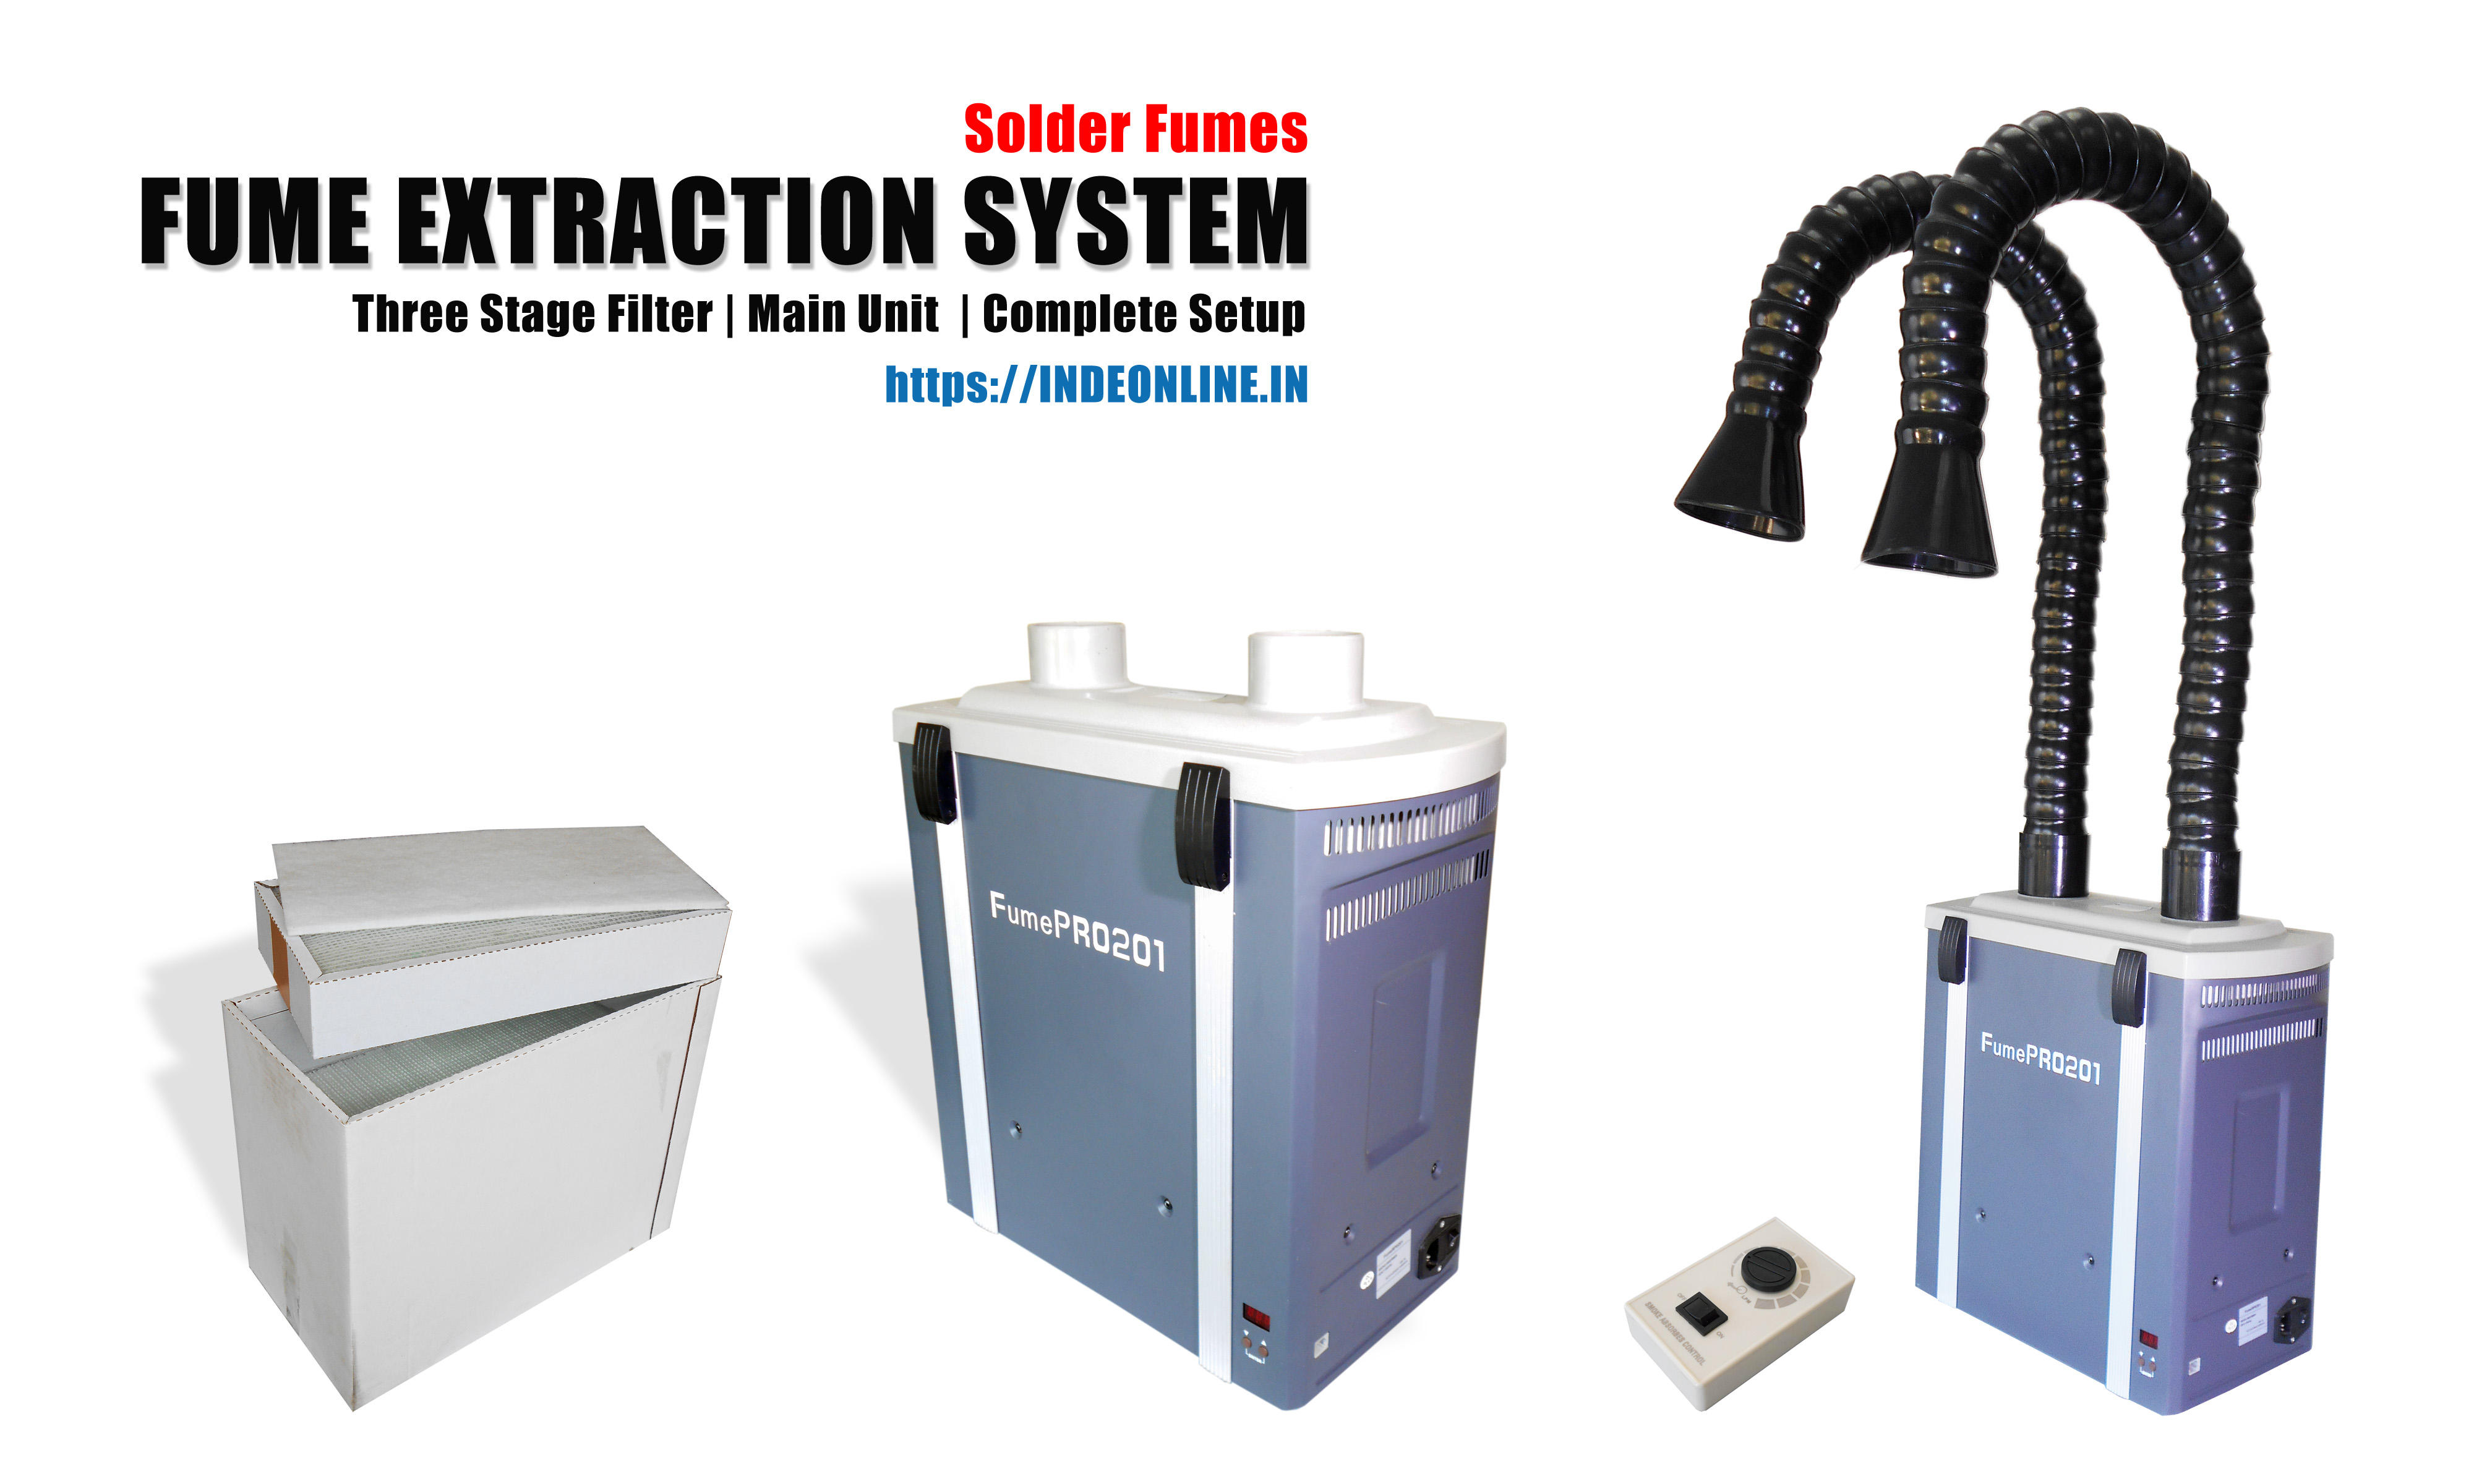 Fume Extraction System, Fume Absorbers India - Solder Fumes